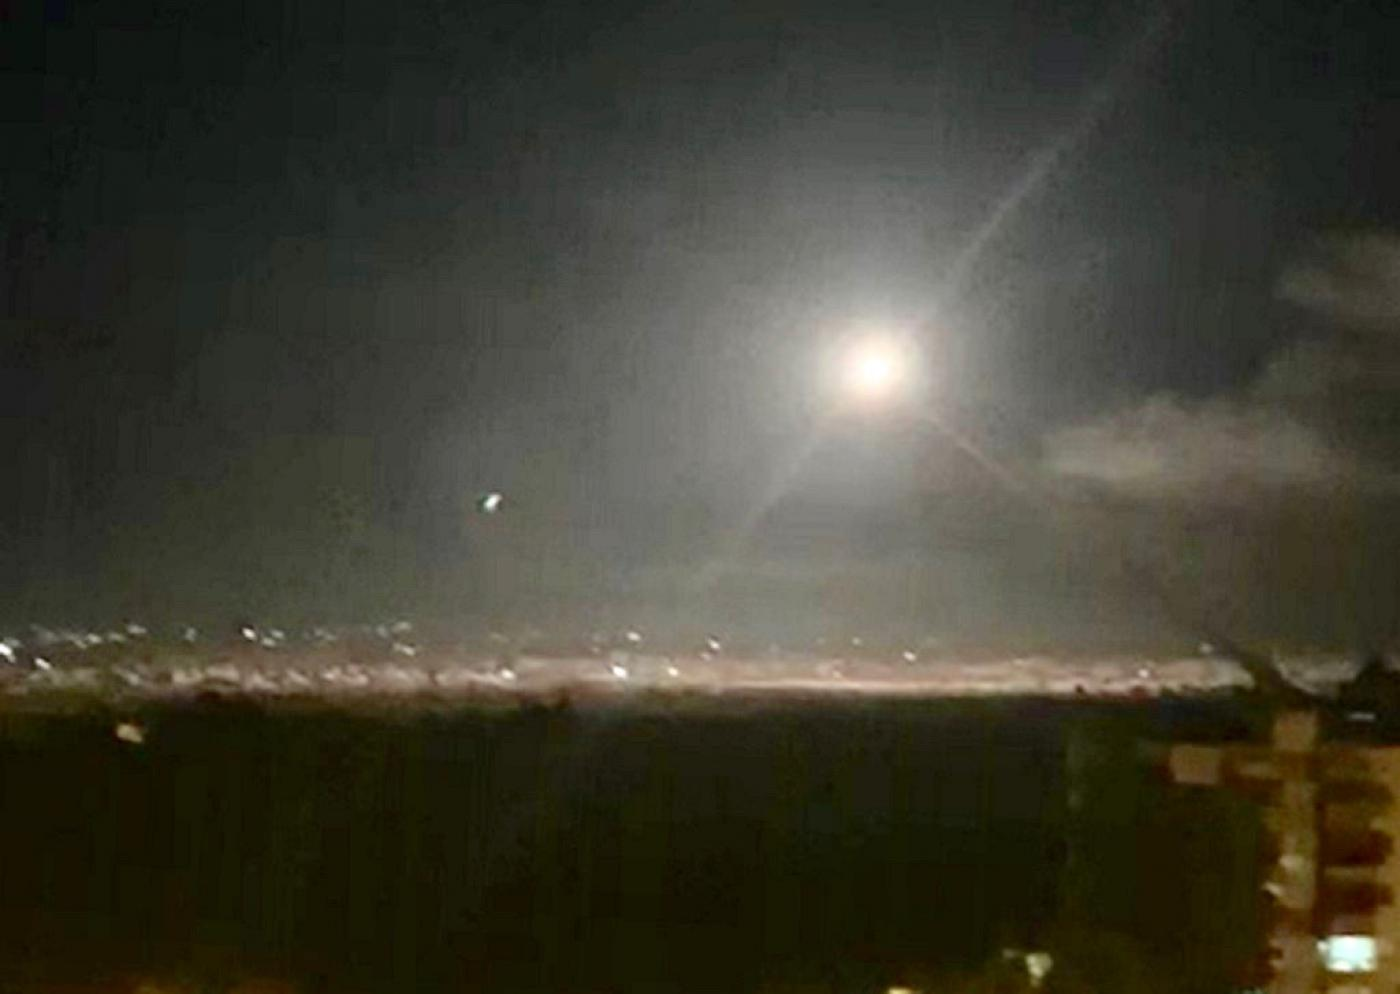 Syrian air defense intercepts missiles from Israel -state media